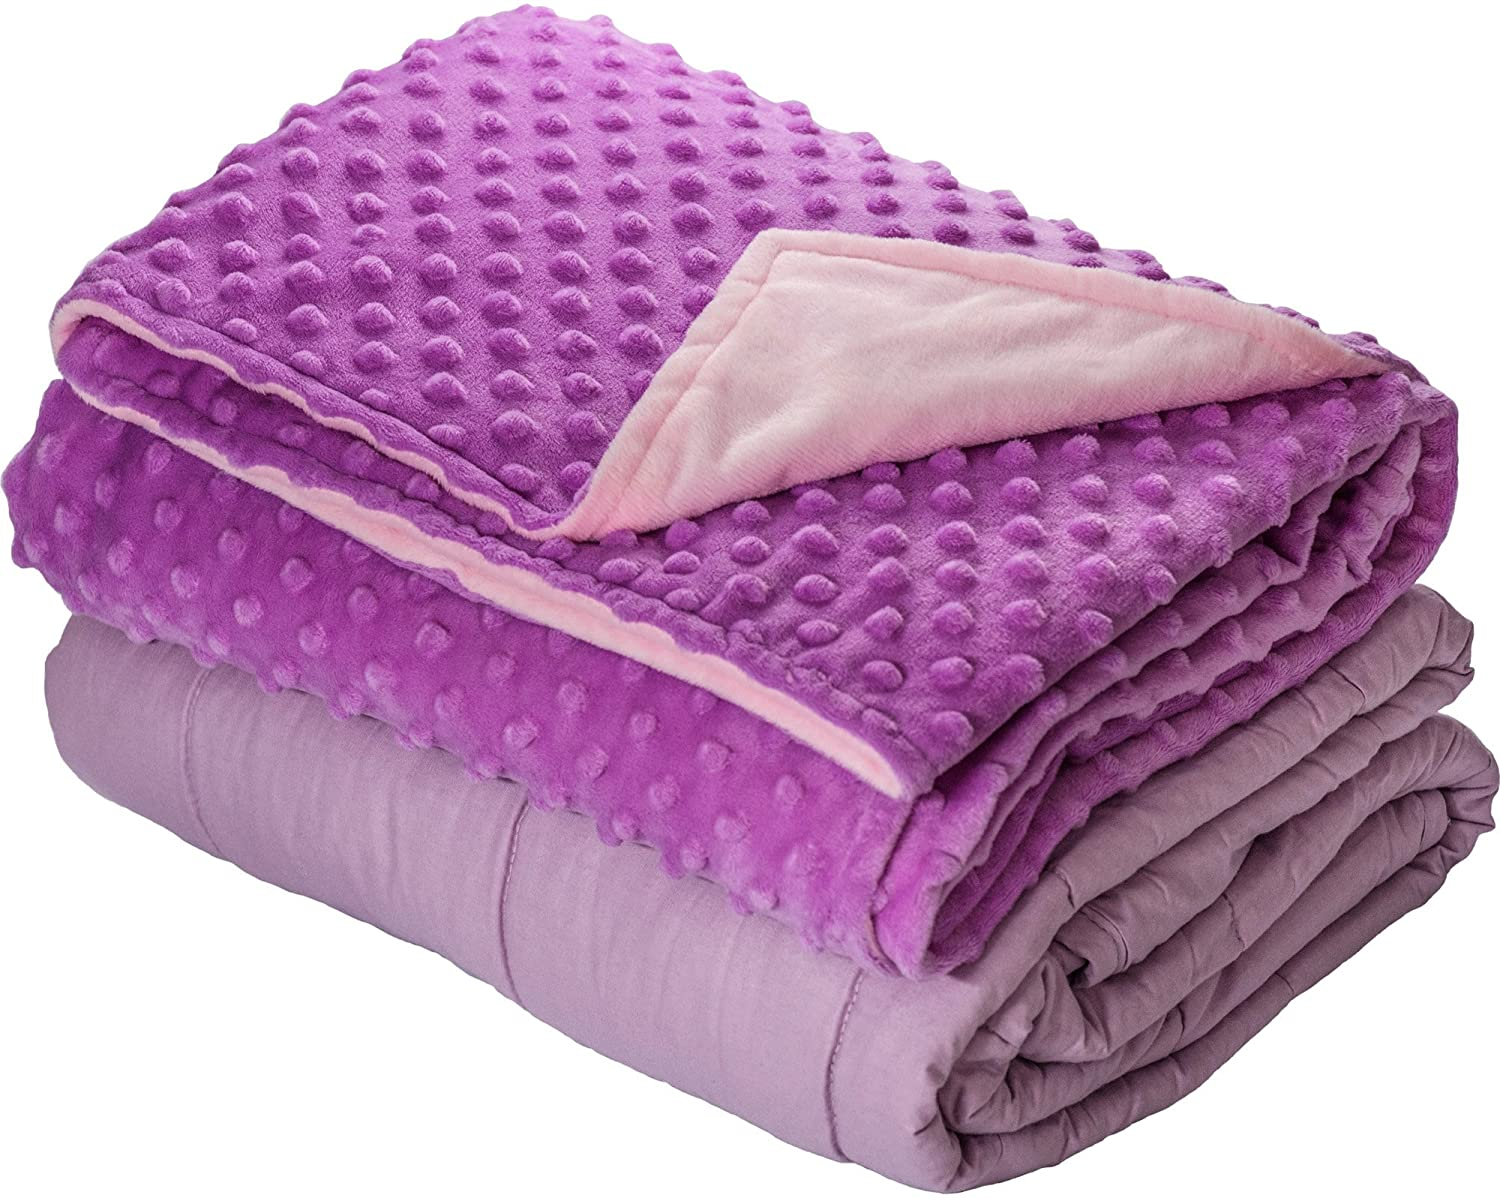 5 lbs Weighted Blanket with Dot Minky Cover for Kids Inner Light Violet//Cover Dark Violet /& Violet, 36x48 5 lbs